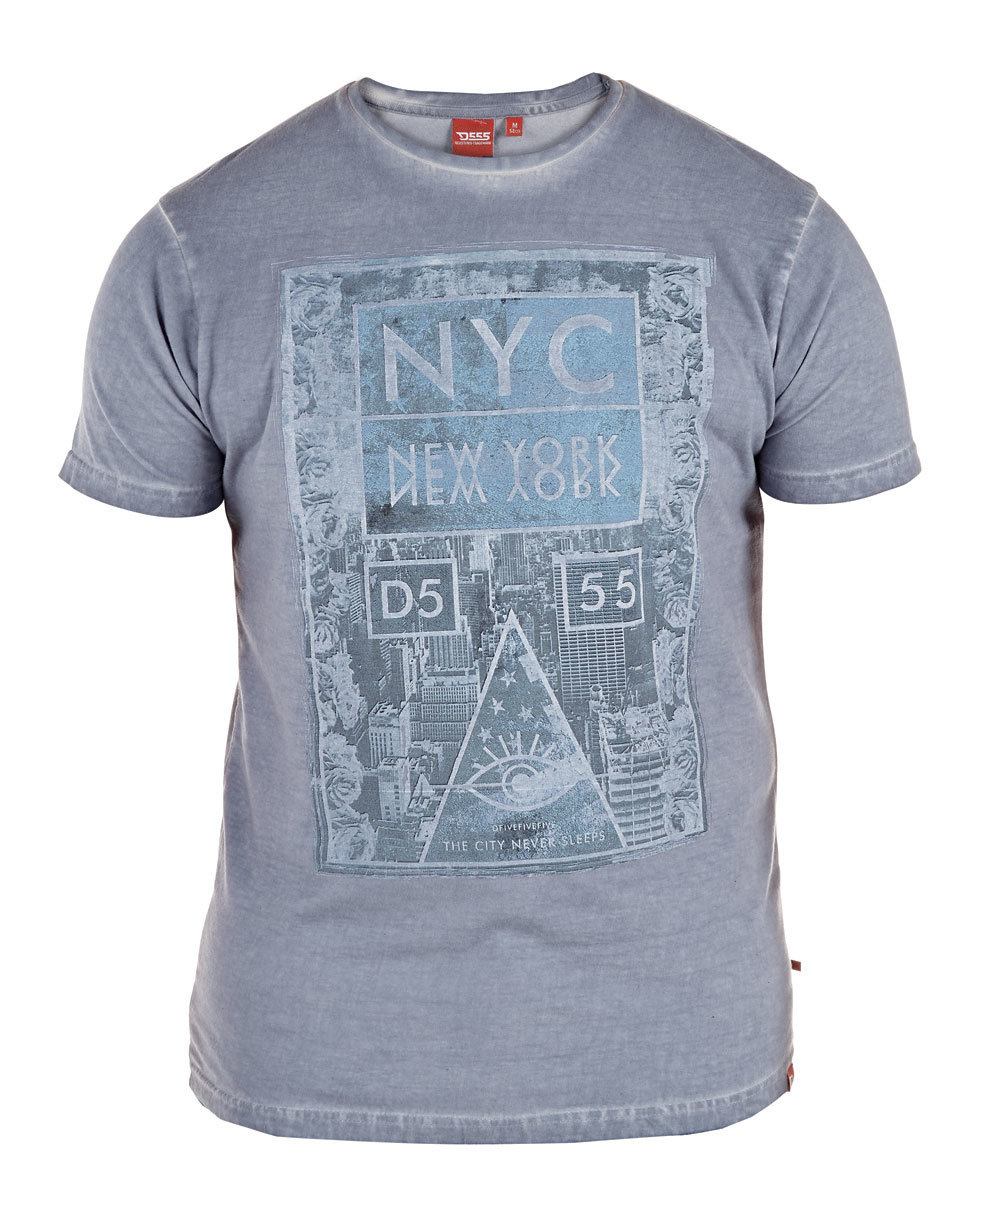 Grote maten oil washed t-shirts